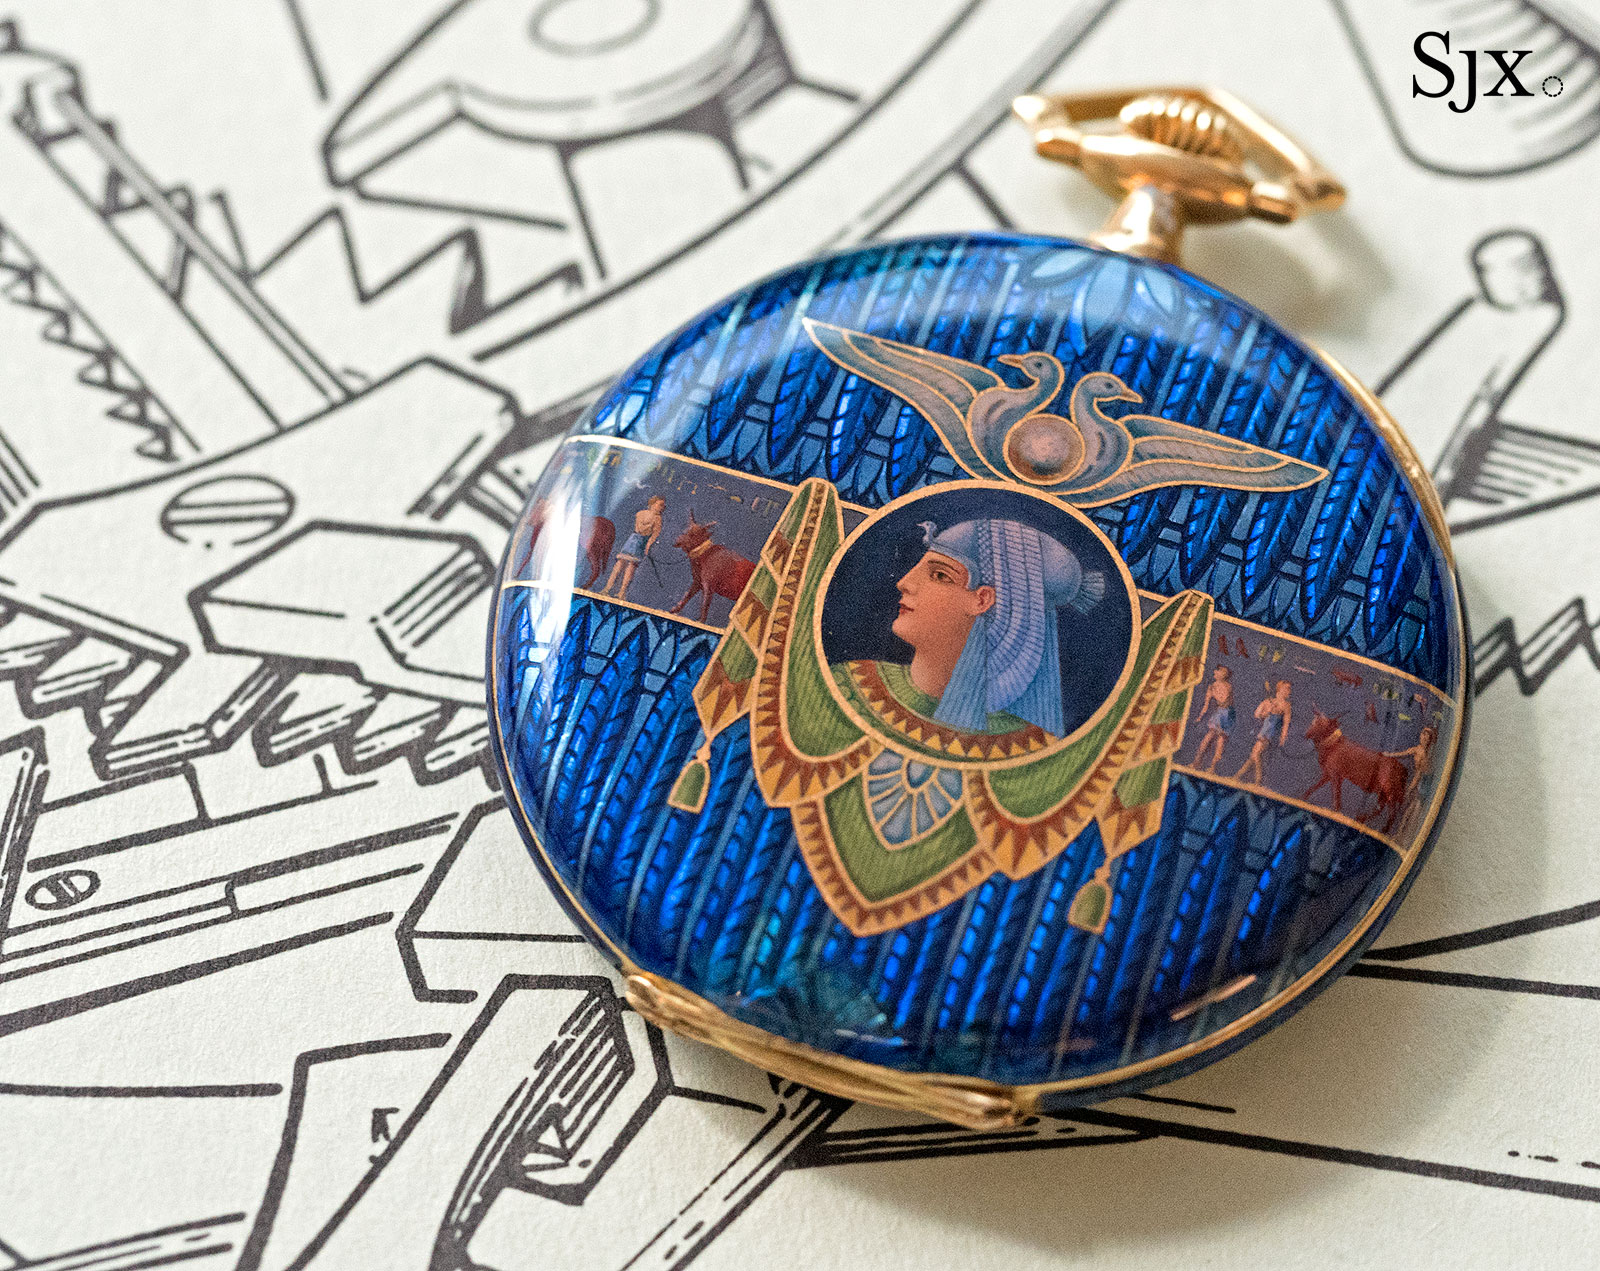 Phillips HKWA3 Patek Philippe enamel Egypt pocket watch 3